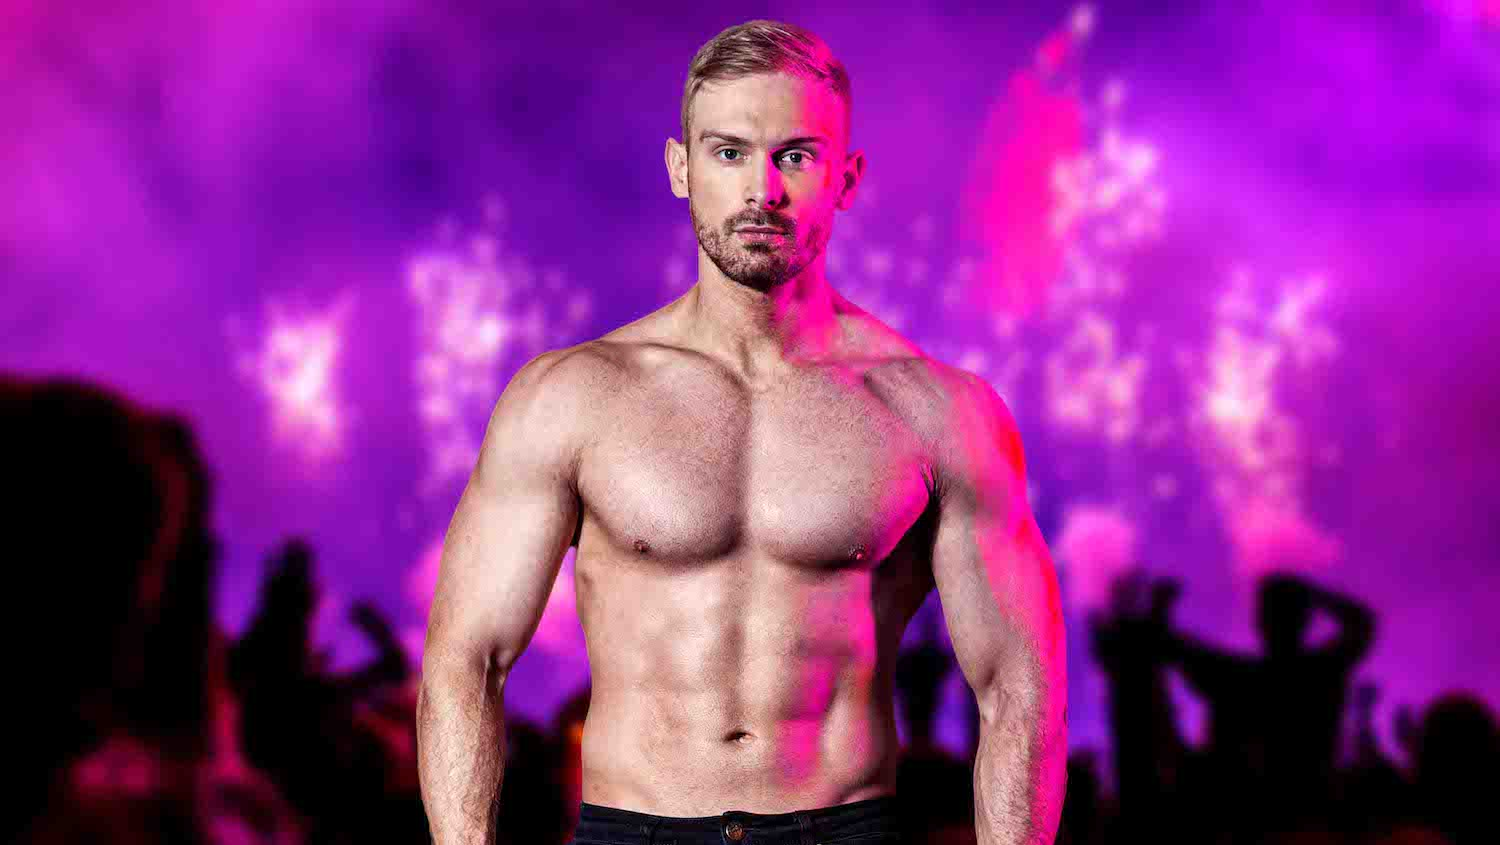 male strip show blog | Best Hen Party Ideas In The UK